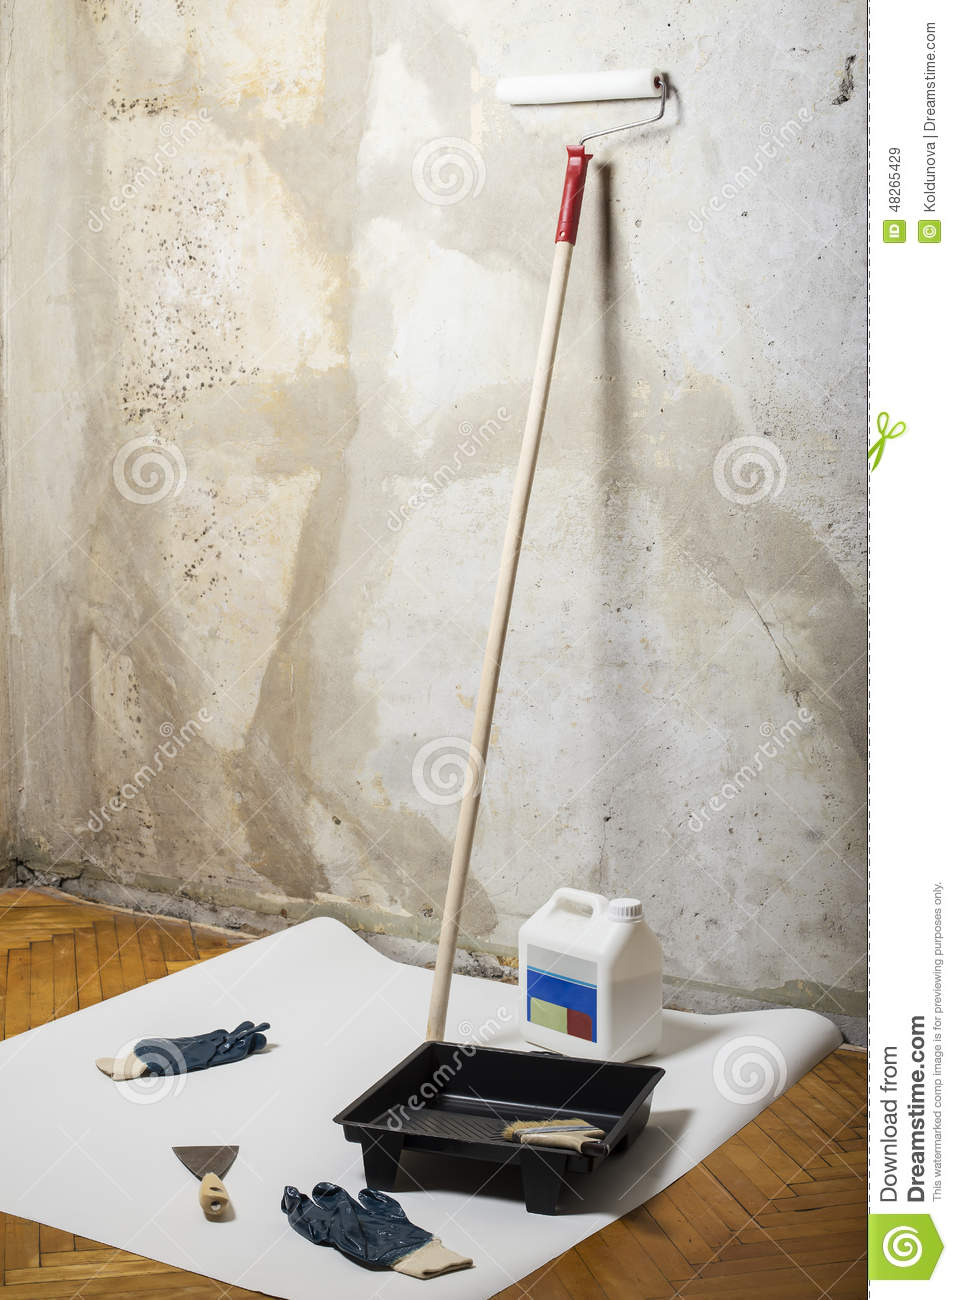 Wall Painting Equipment : Tools for painting stock photo image